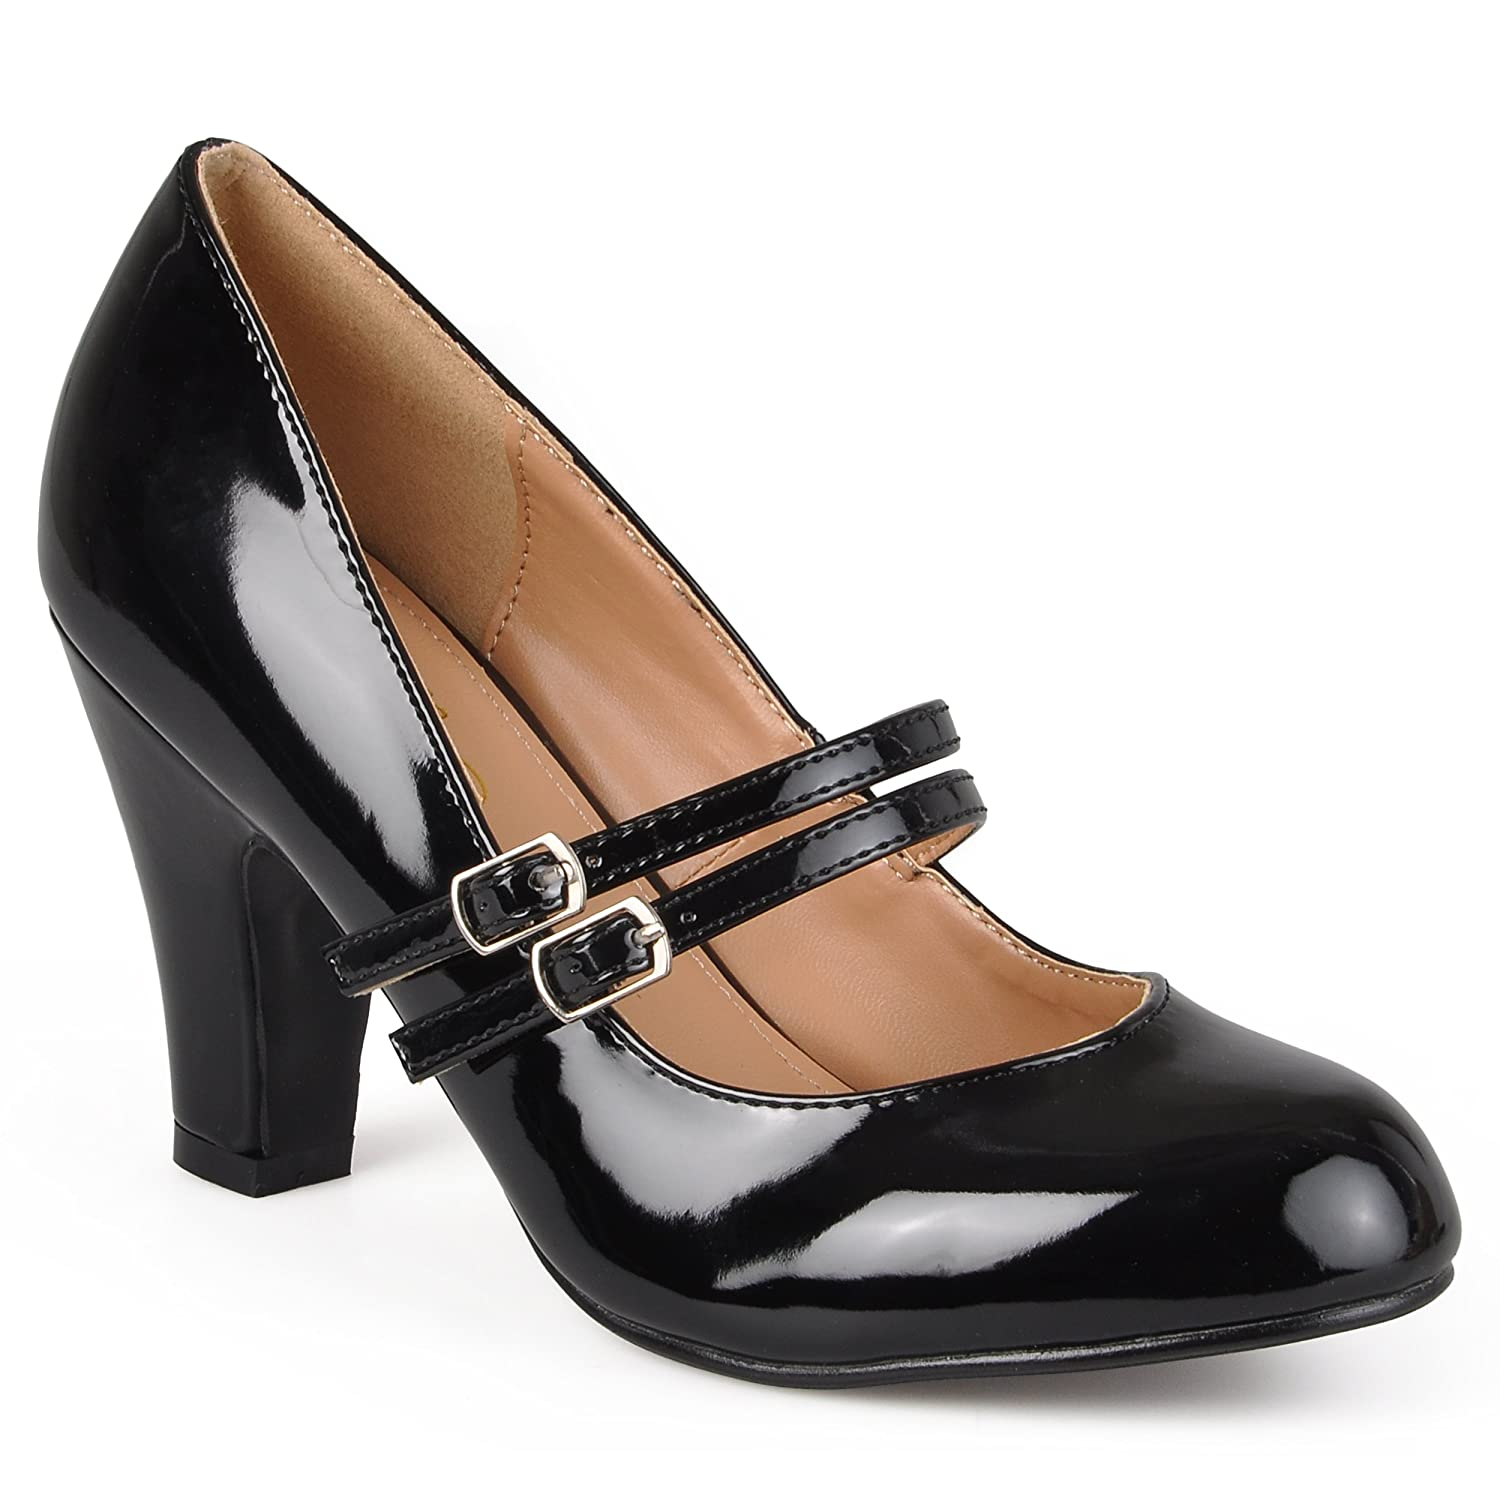 1940s Style Shoes Journee Mary Jane Faux Leather Pumps $31.99 AT vintagedancer.com